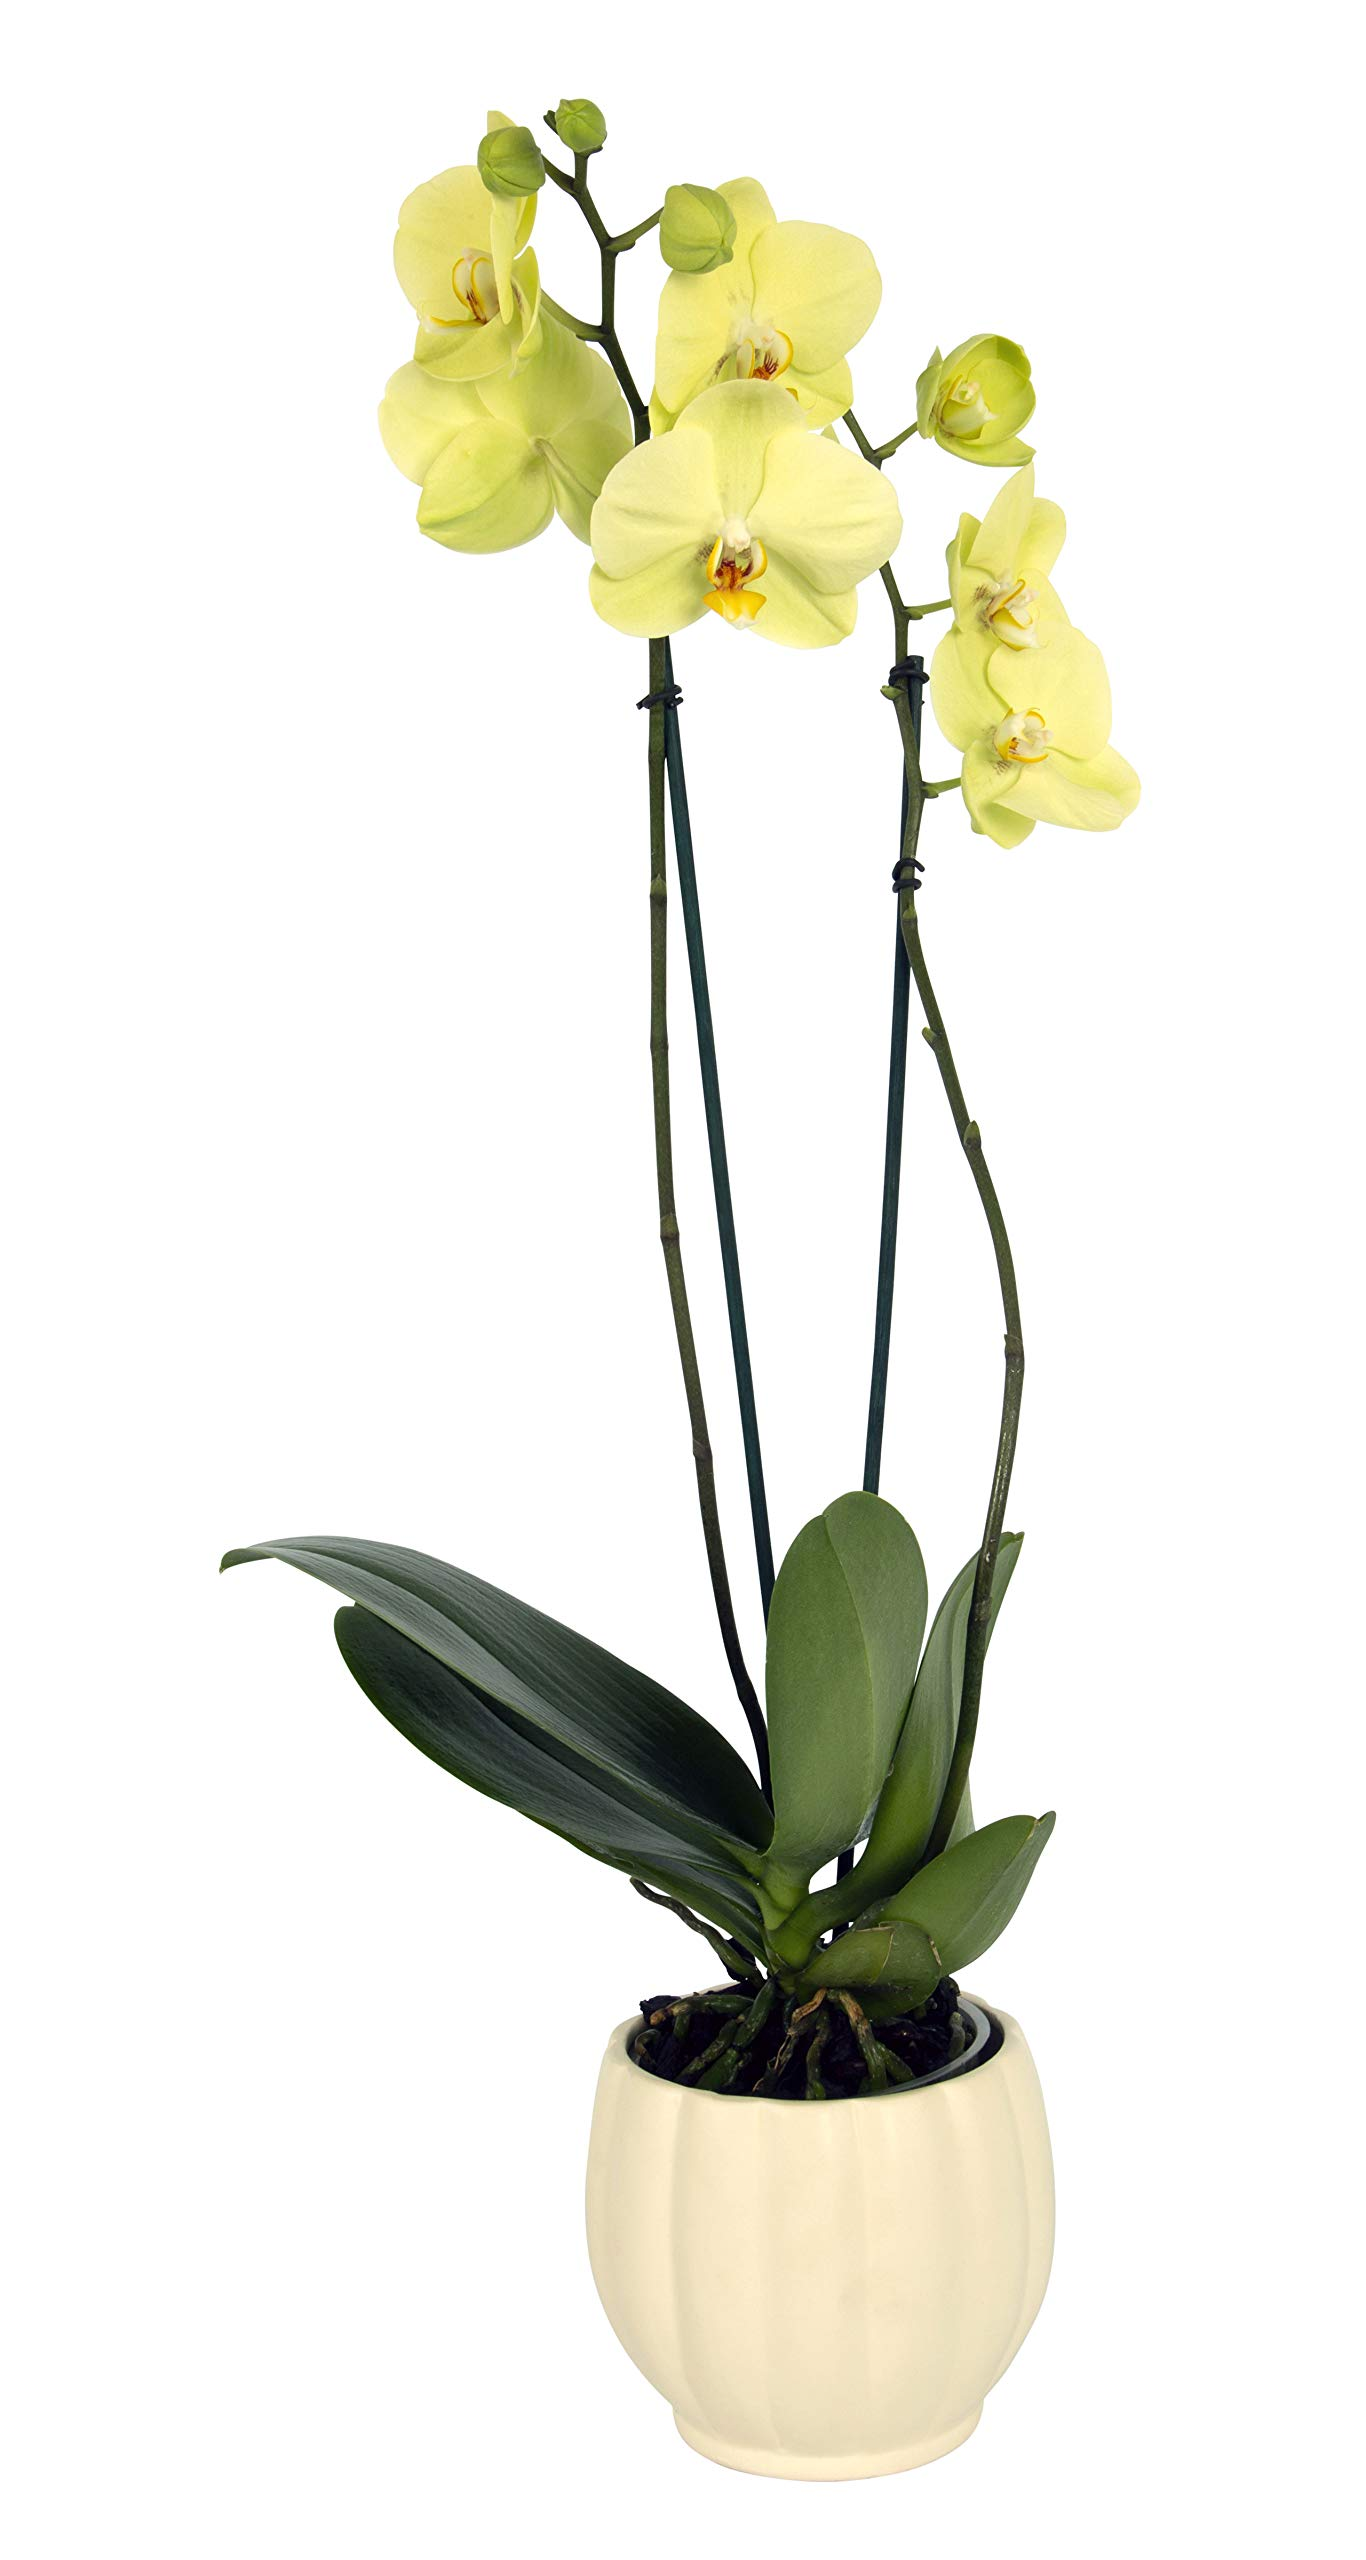 Color Orchids Live Blooming Double Stem Phalaenopsis Orchid Plant in Ceramic Pot, 20'' - 24'' Tall Yellow